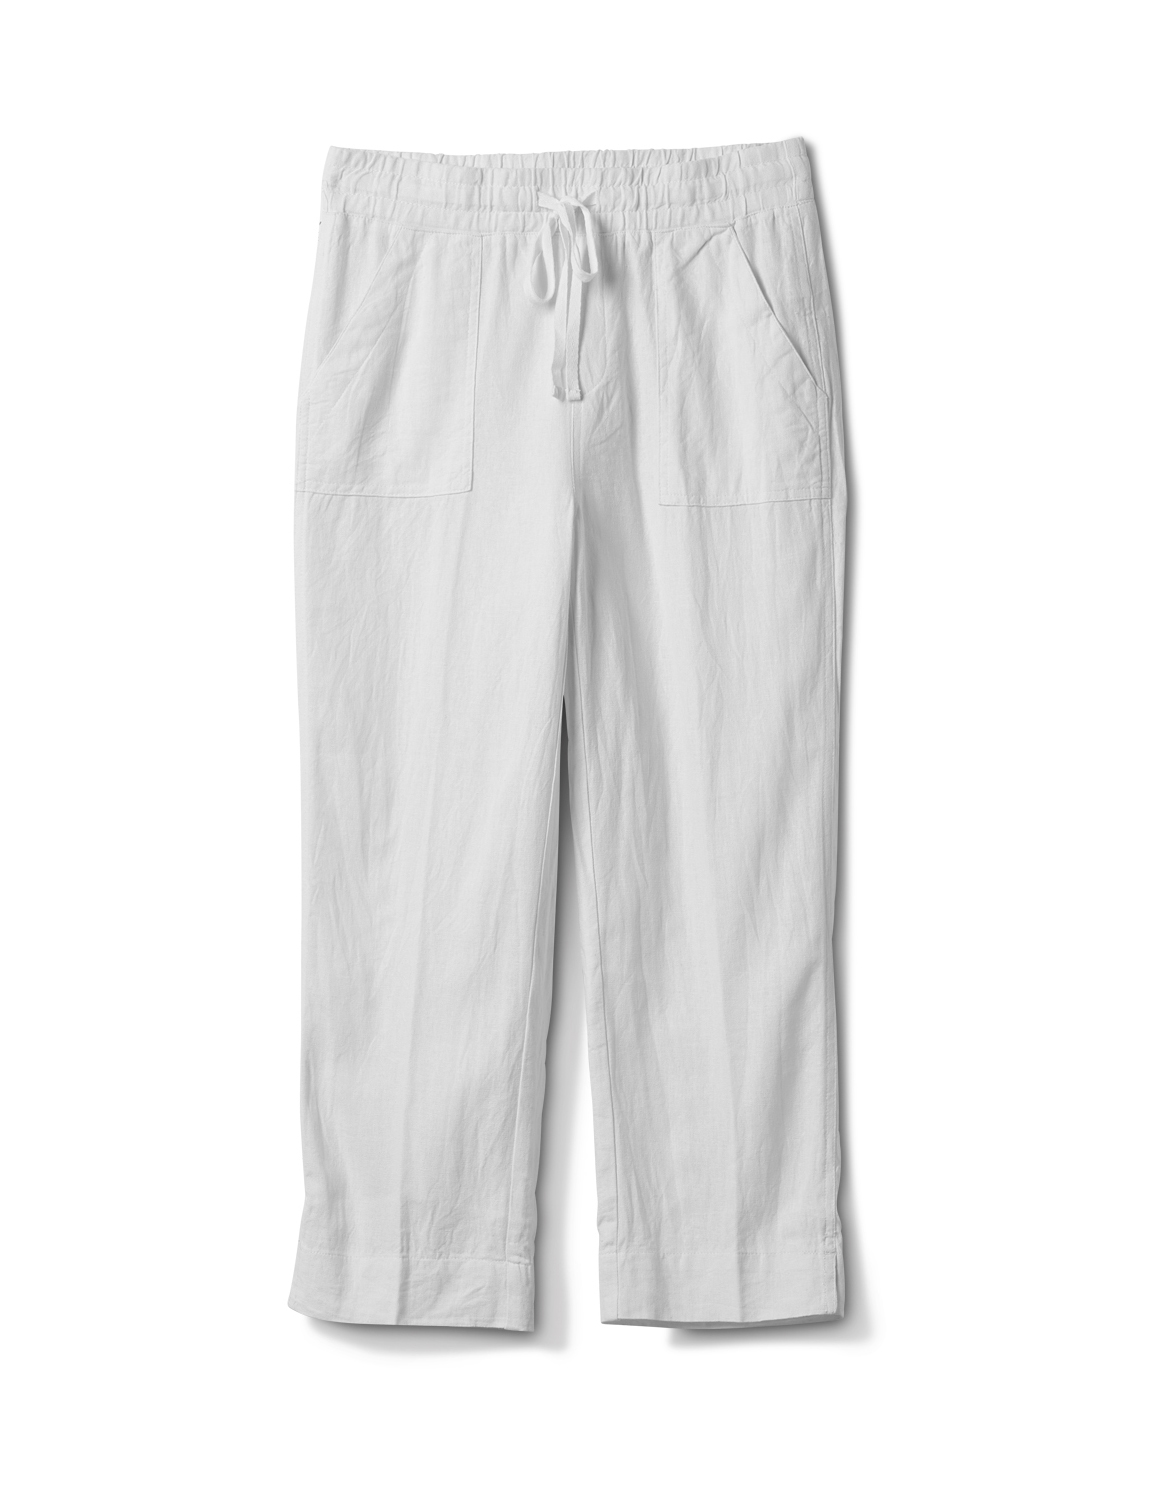 Drawstring  Waist Pull On Crop Pant With Pockets -White - Front